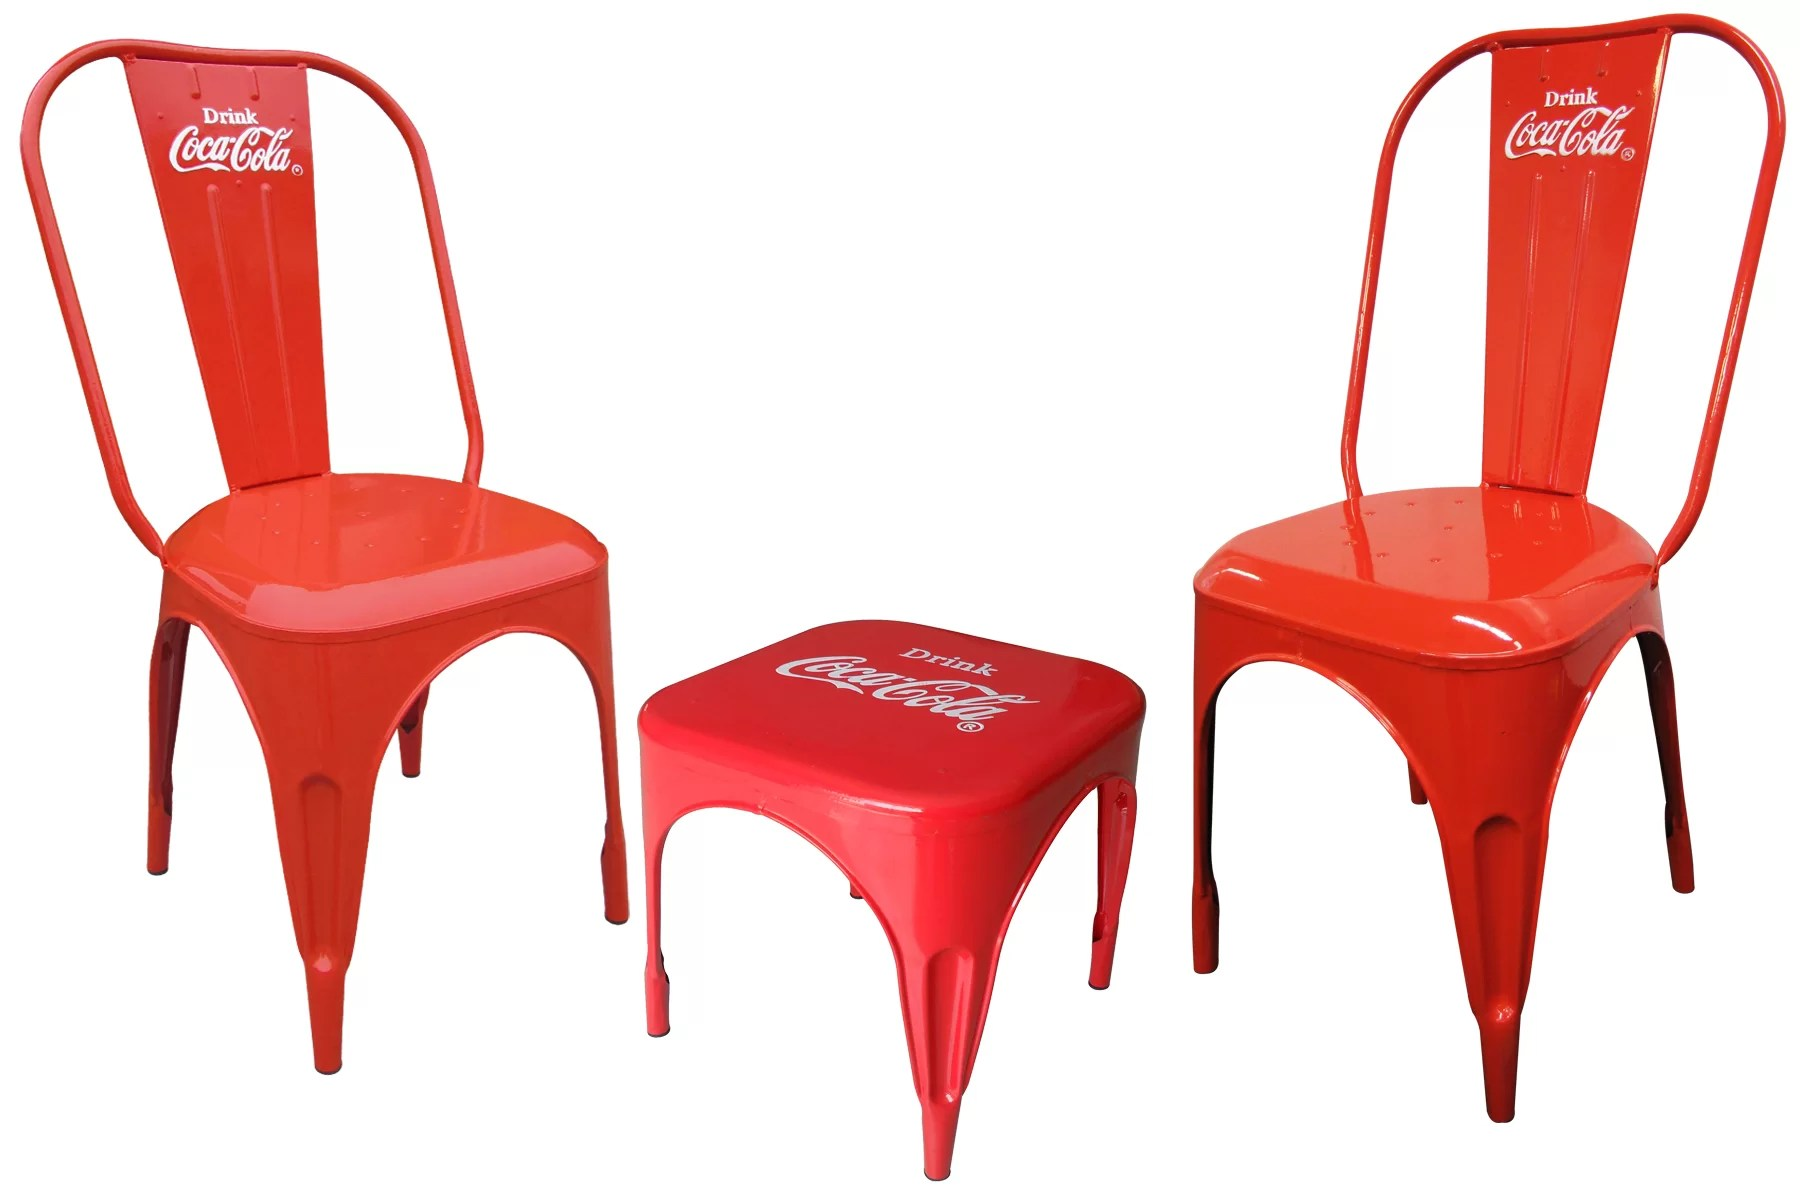 coca cola chairs and tables antique childs rocking chair value leighcountry retro cafe 3 piece bistro set wayfair